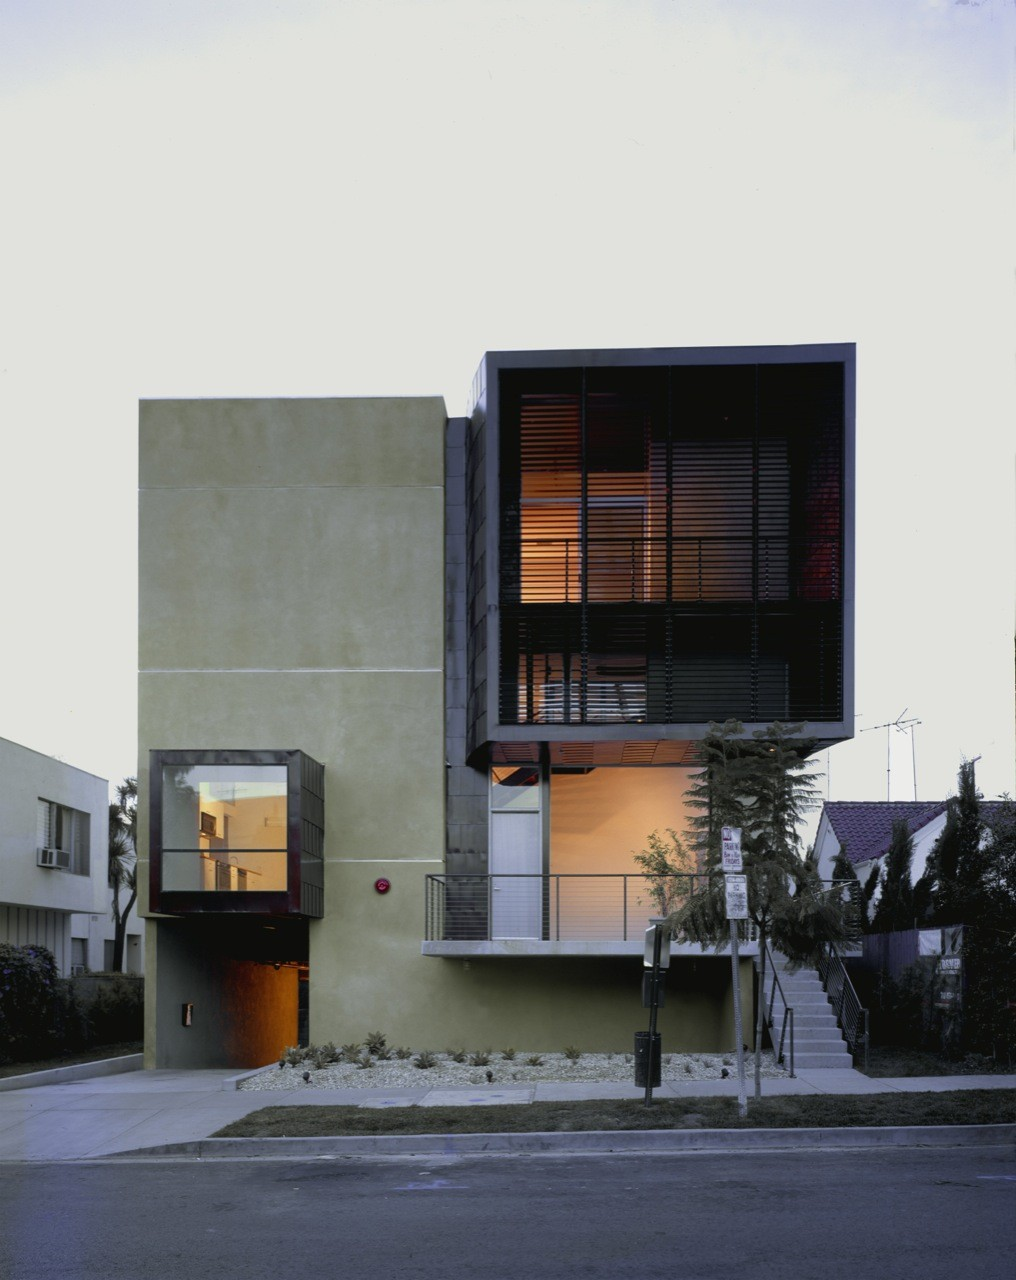 Orange Grove / Brooks + Scarpa Architects, © Marvin Rand